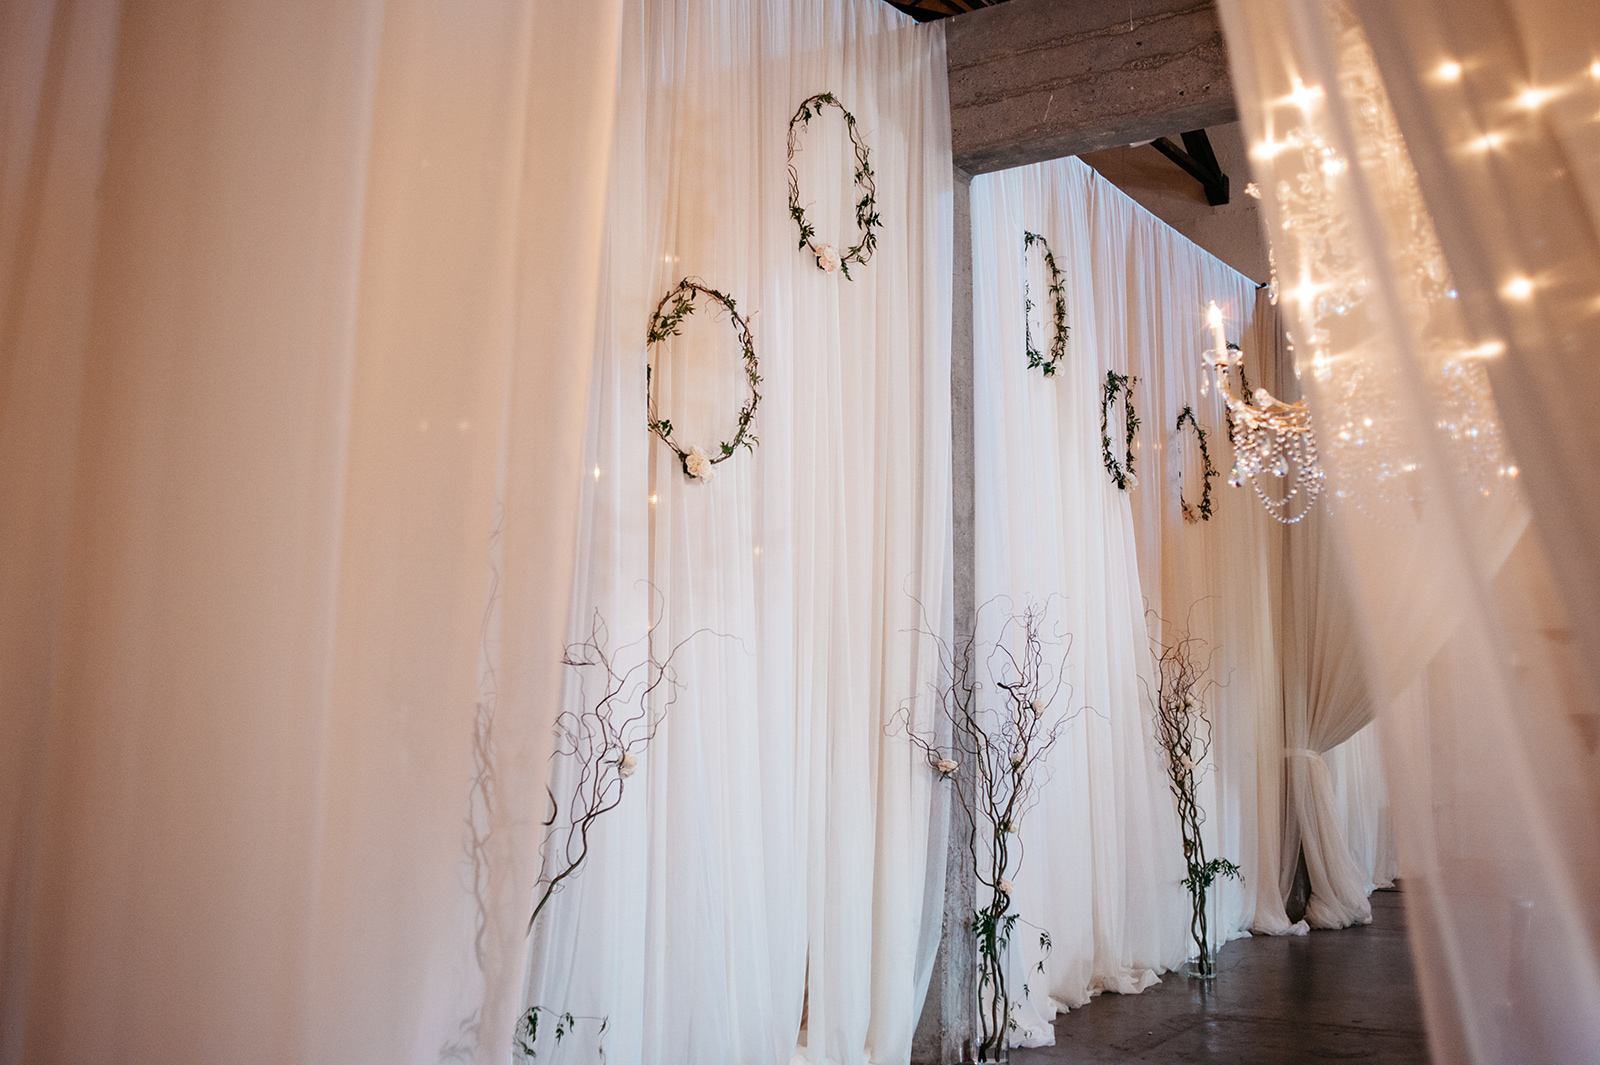 Drapery by Three Palms Events. Floral by Rodarte Floral Design.